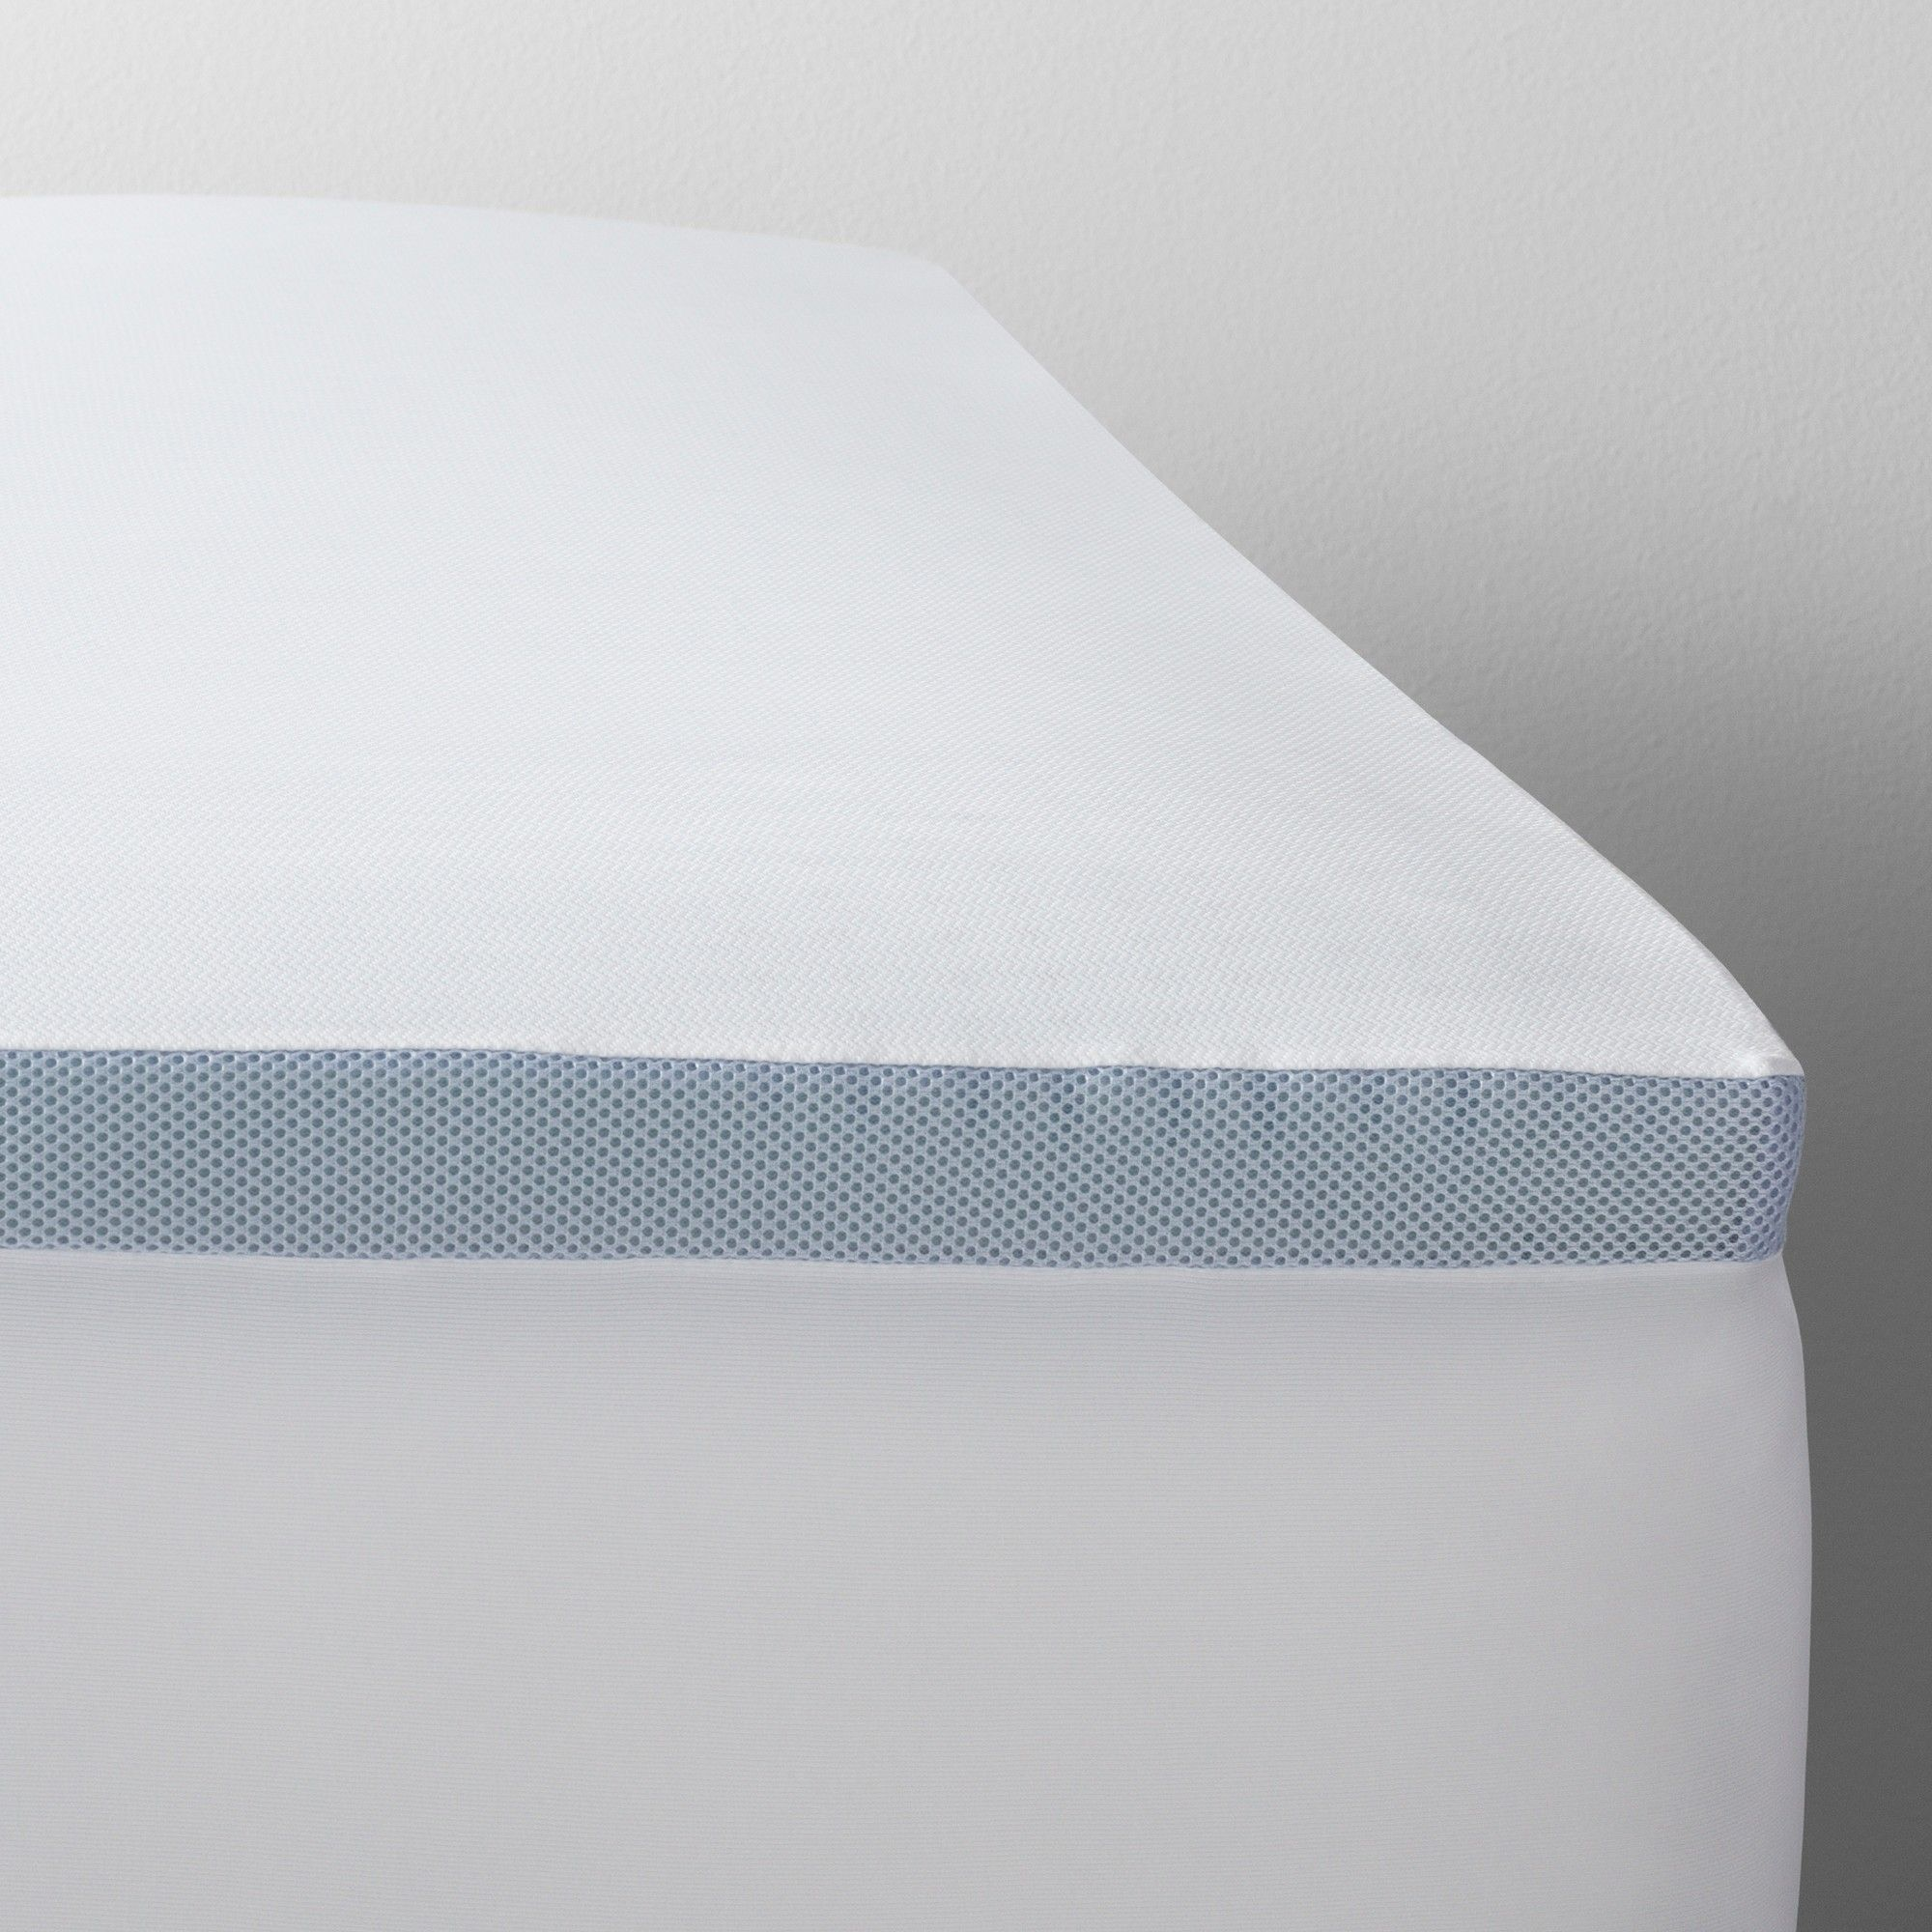 2 Cooling Gel Mattress Topper Queen White Made By Design